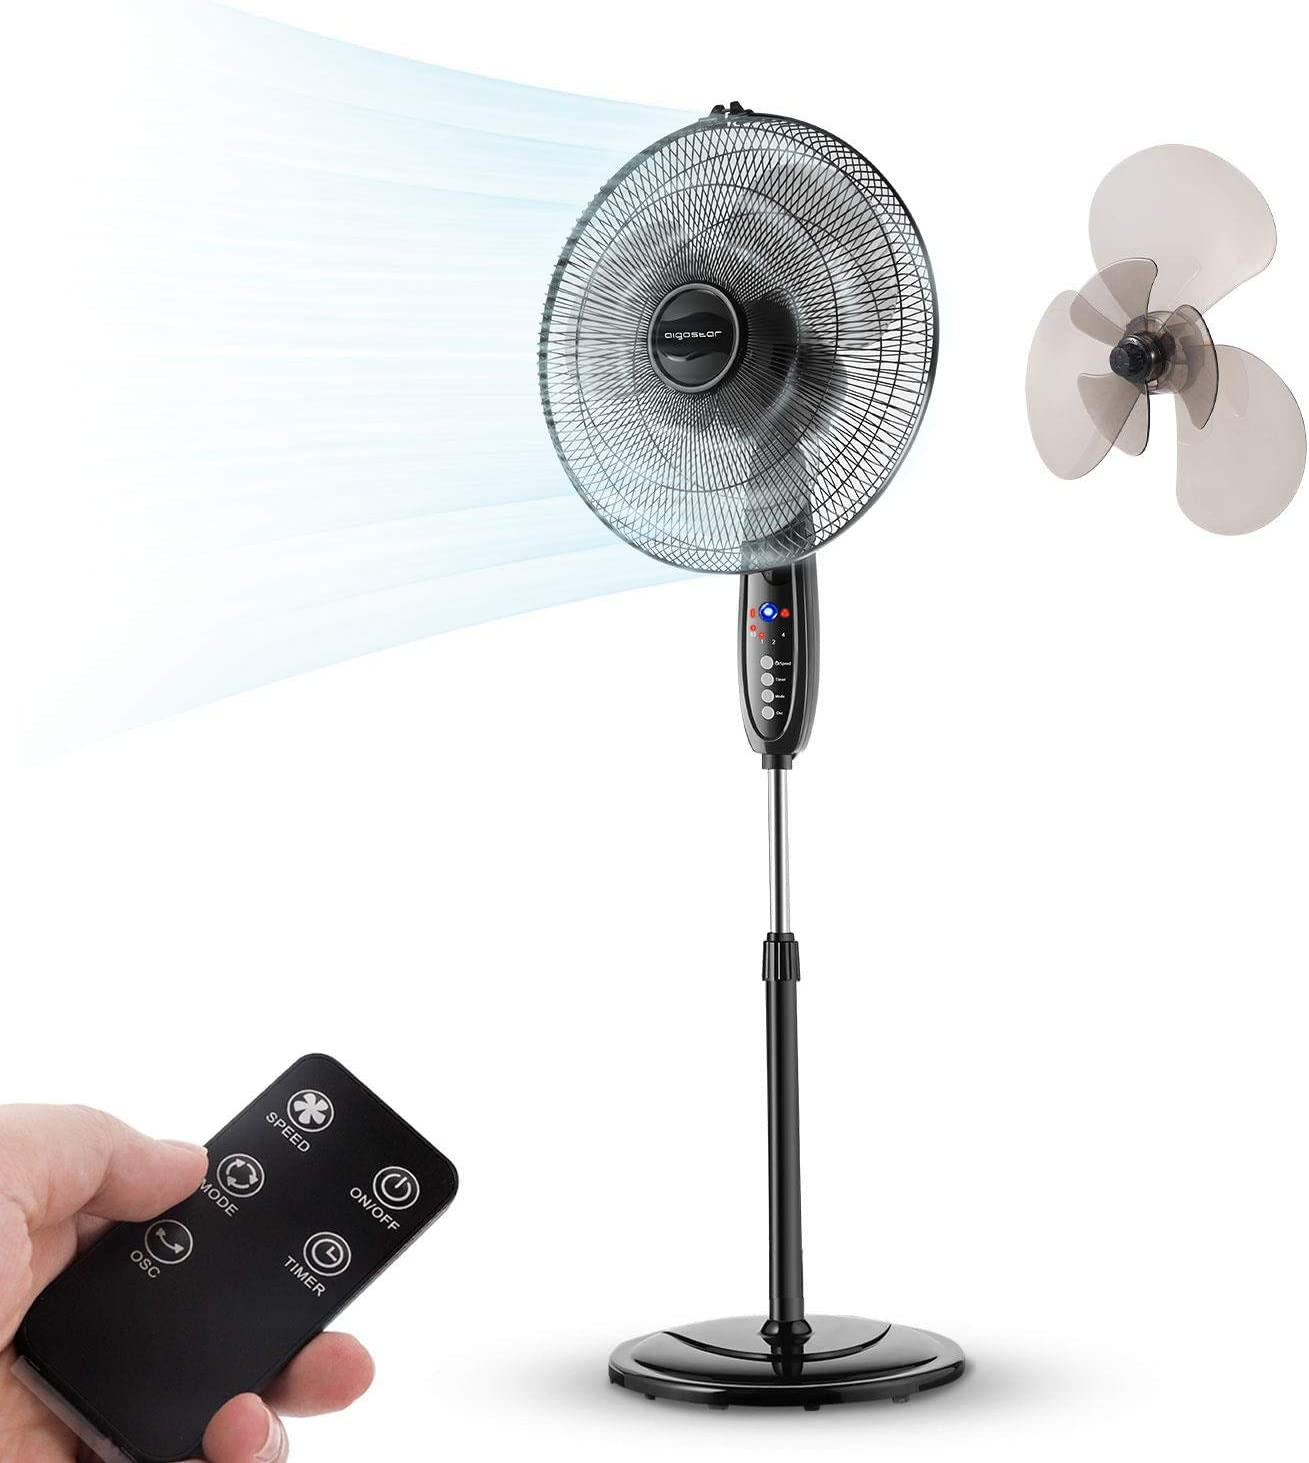 """Aigostar Lewis - 16"""" Standing Fan, Electronic Oscillating Pedestal Fans with Remote Control, Pedestal Floor Fan for Whole-Room Cooling, 3-Mode &3-Speed & 7.5H Timer, Black"""